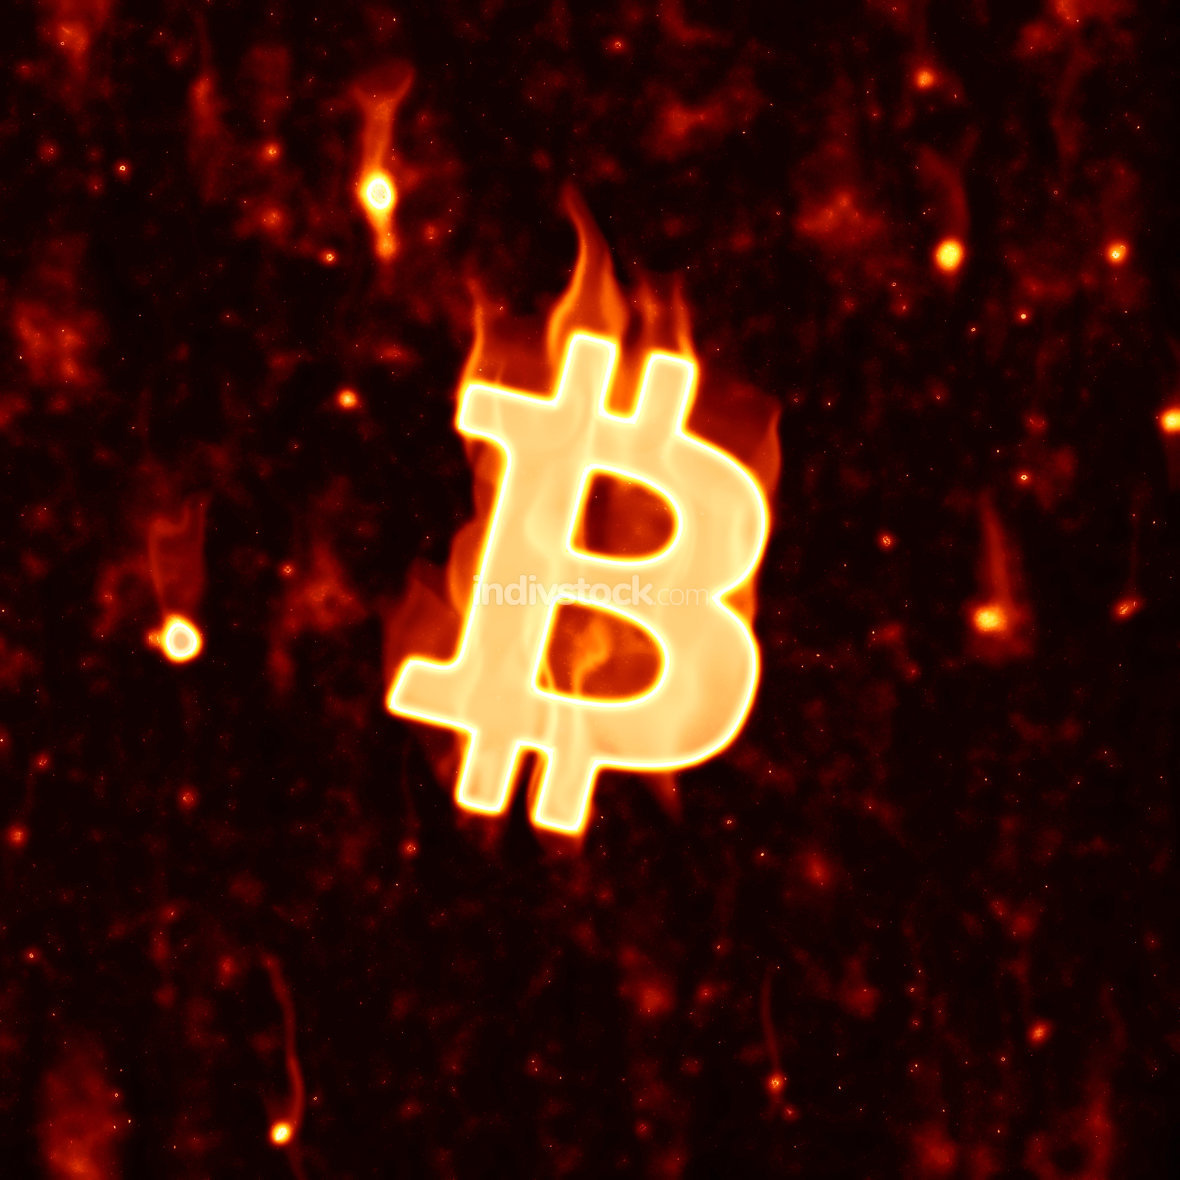 burning bitcoin sign